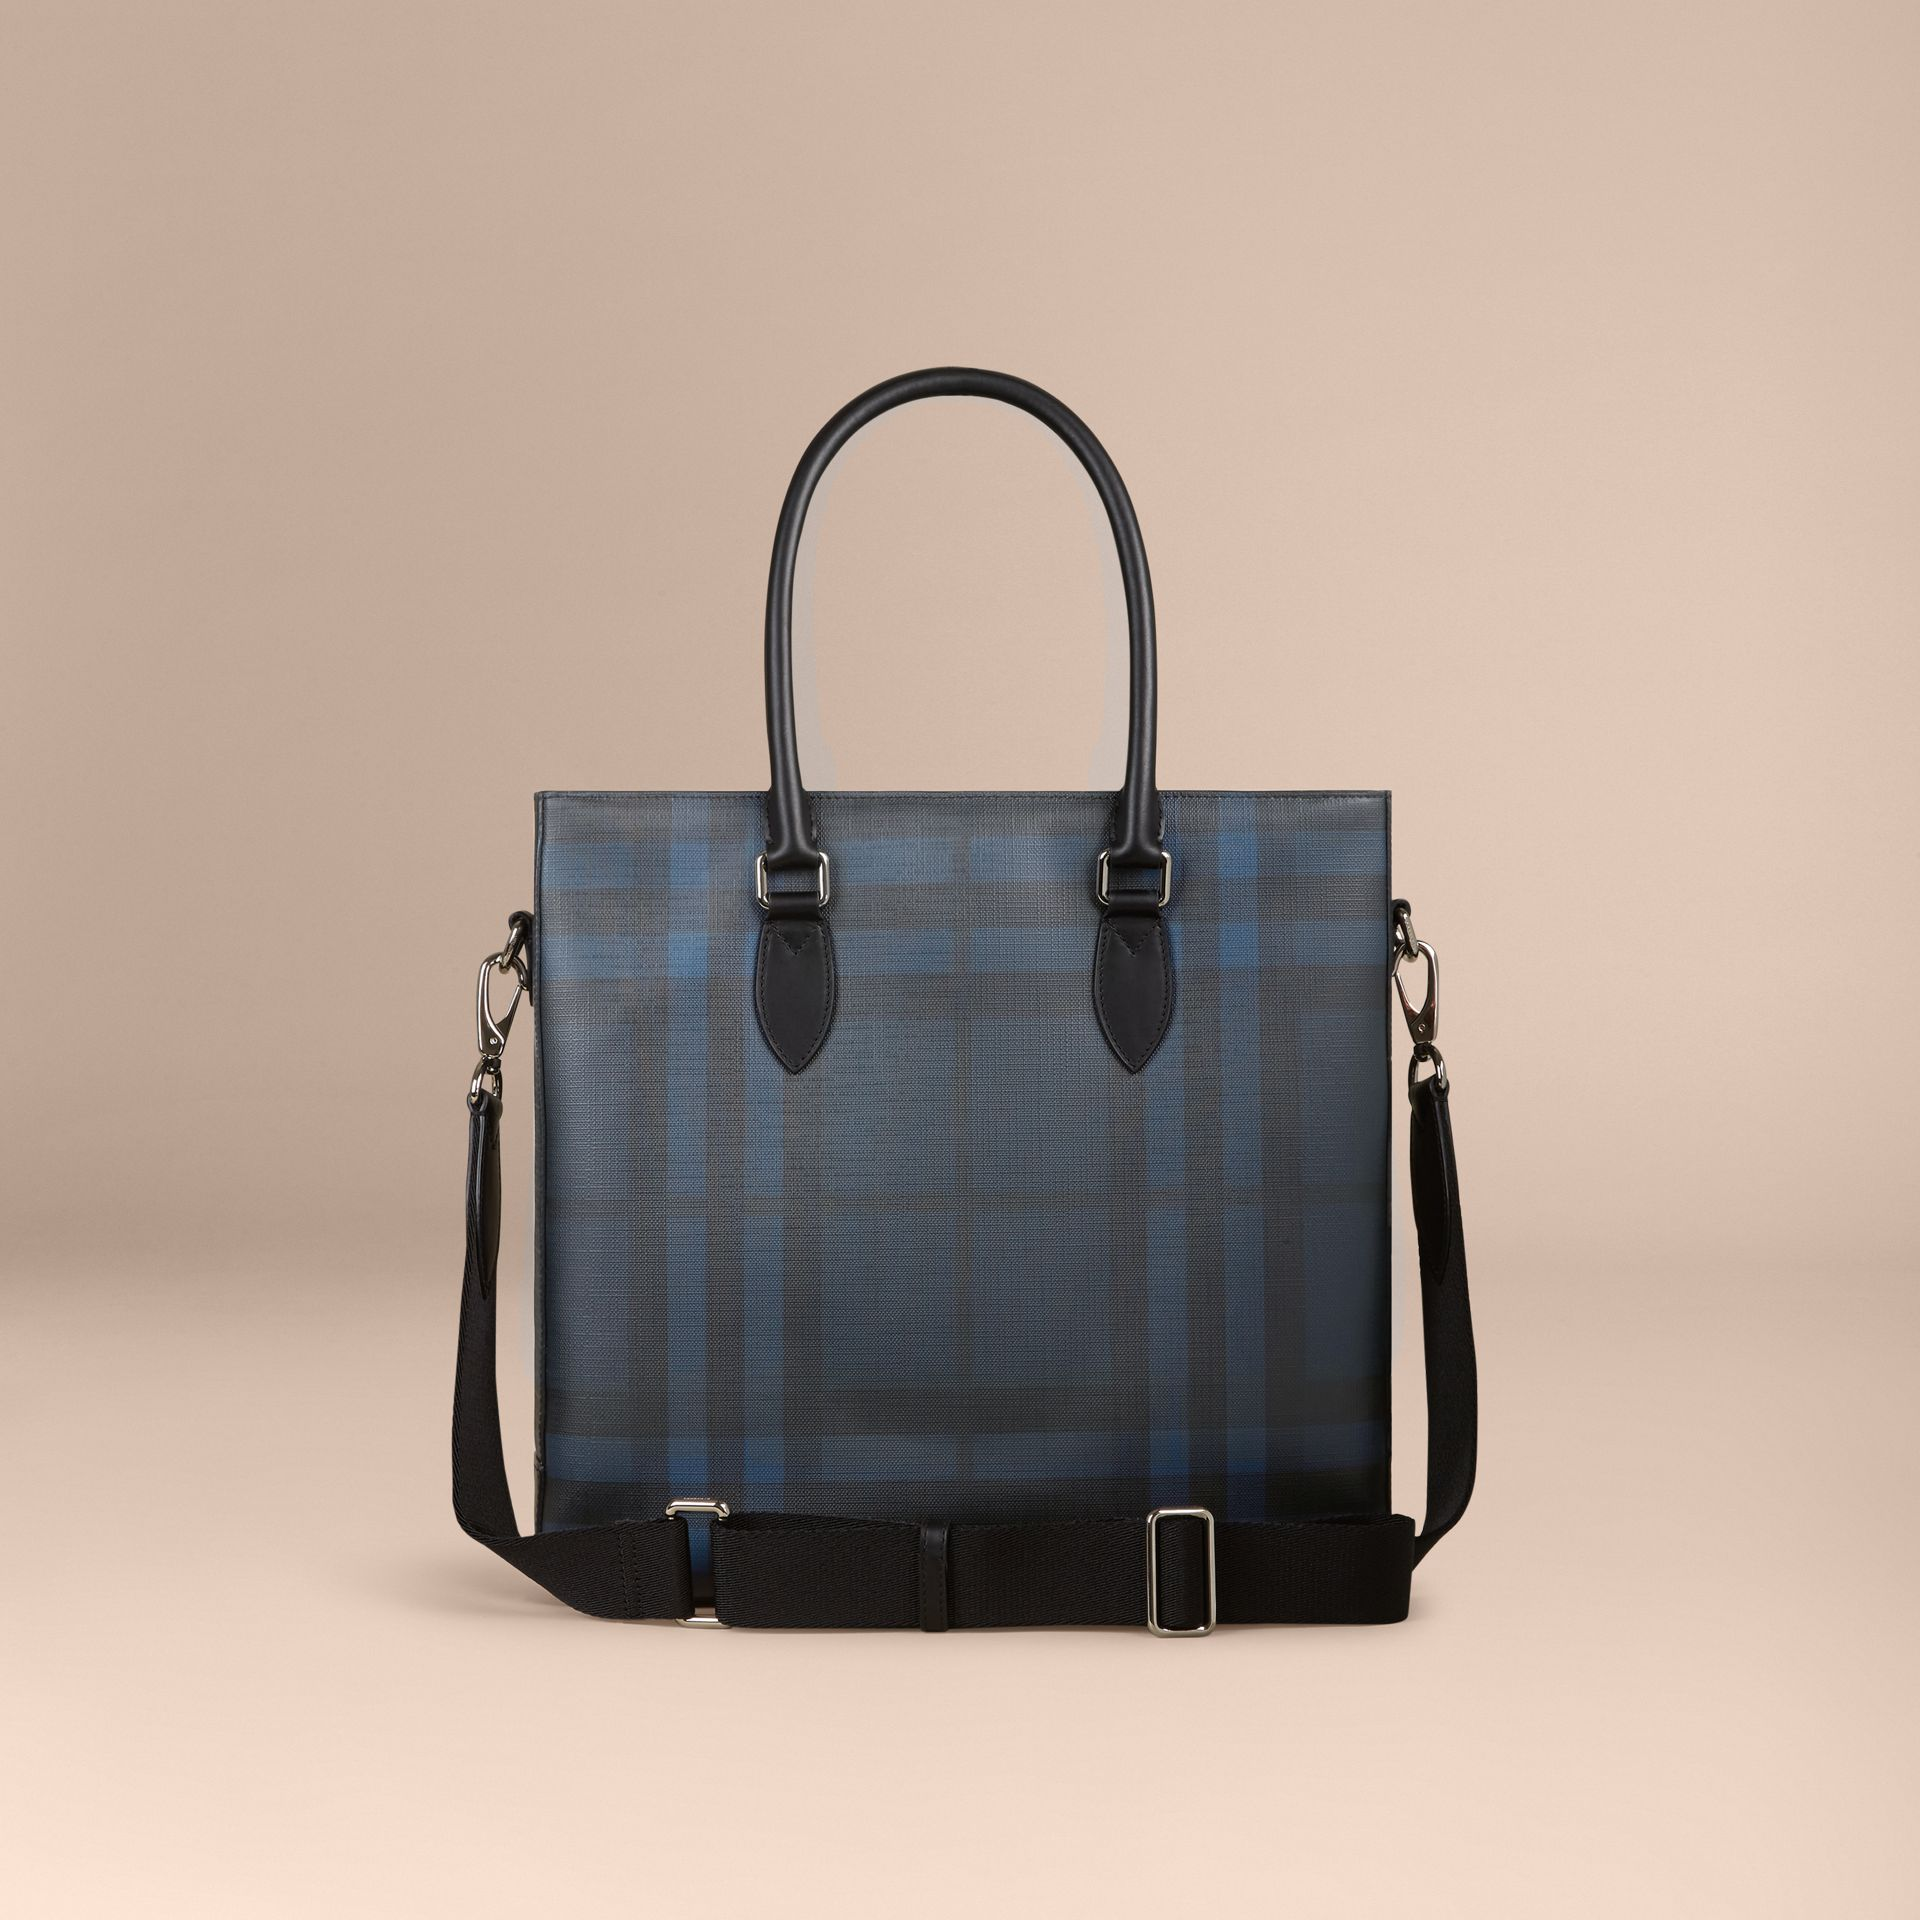 London Check Tote Bag in Navy/black - Men | Burberry Australia - gallery image 4